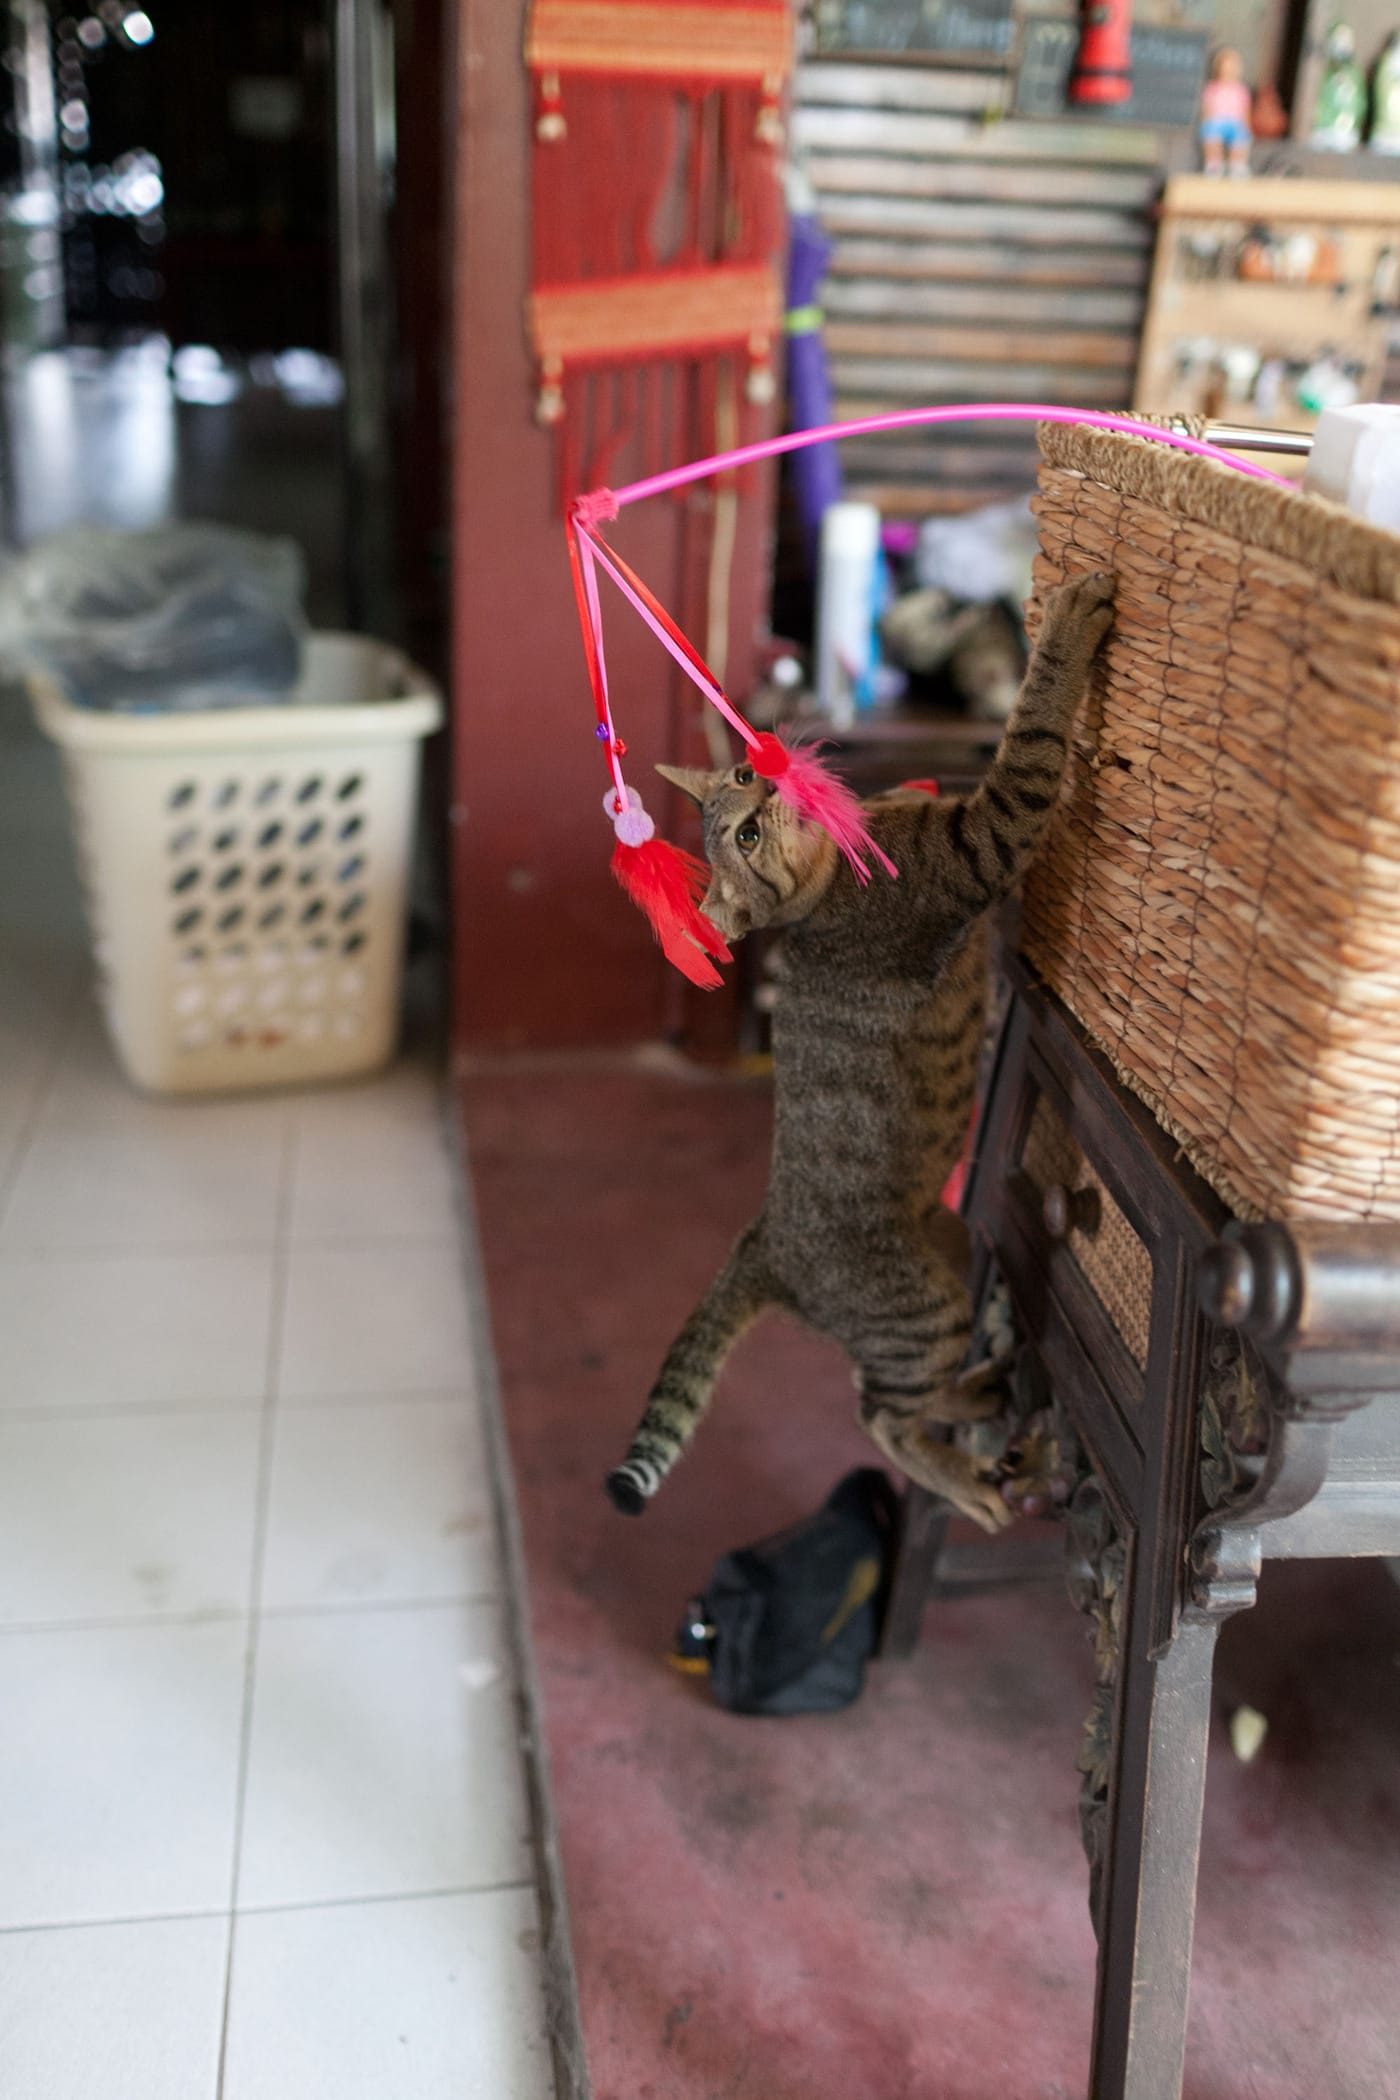 Lek the cat at Deejai Backpackers in Chiang Mai, Thailand